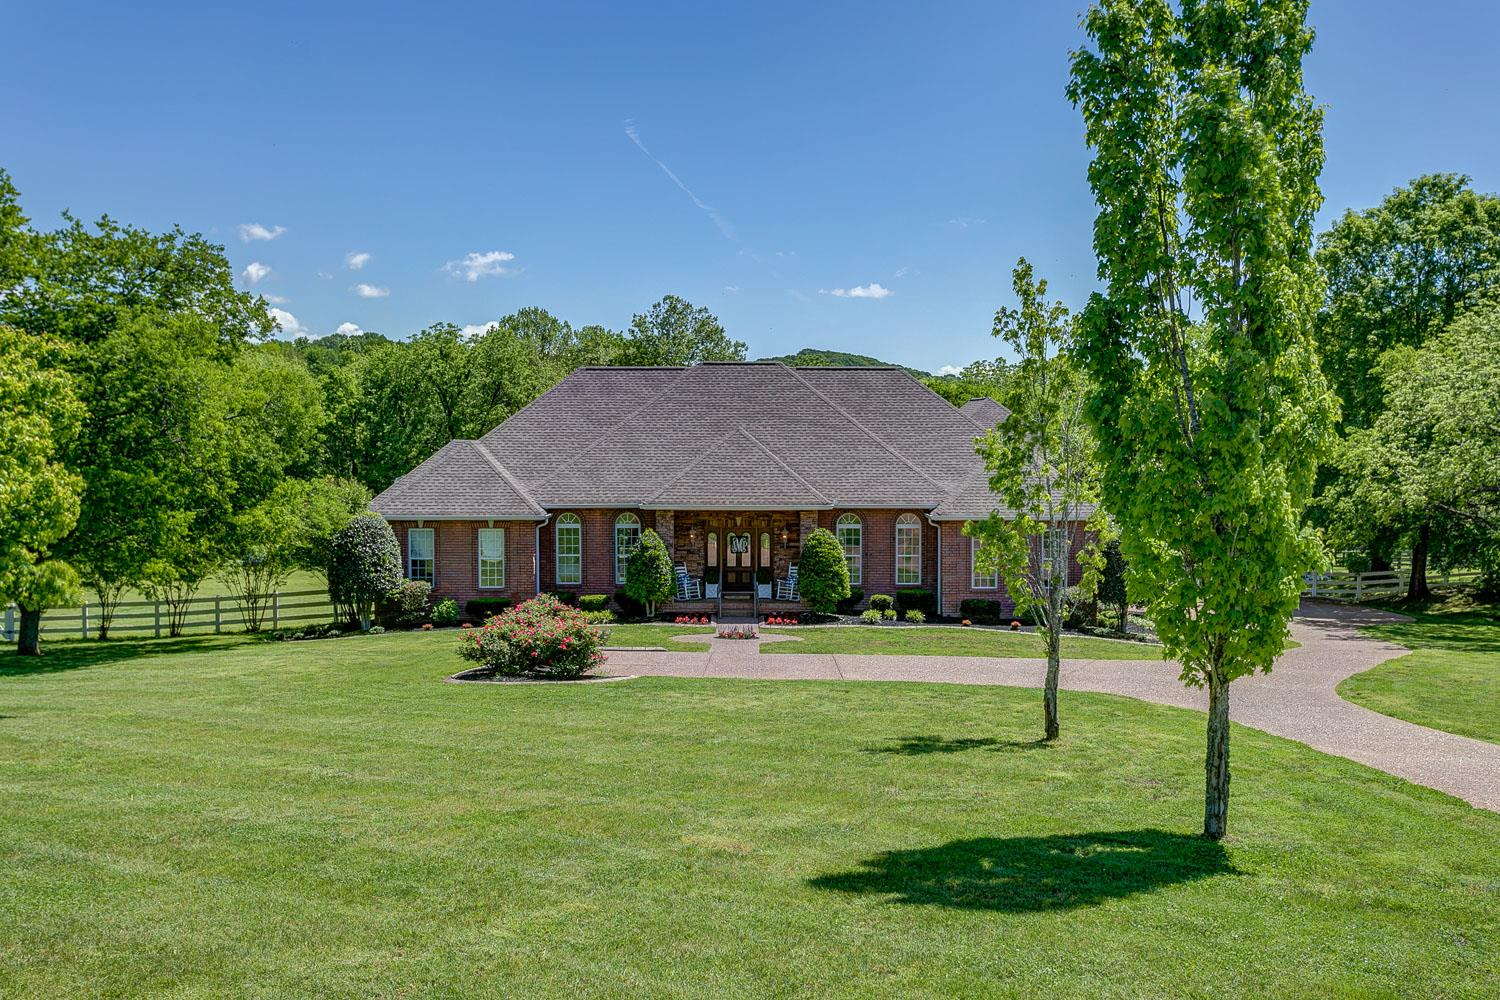 364 Lindsey Hollow Rd, Gallatin, Tennessee